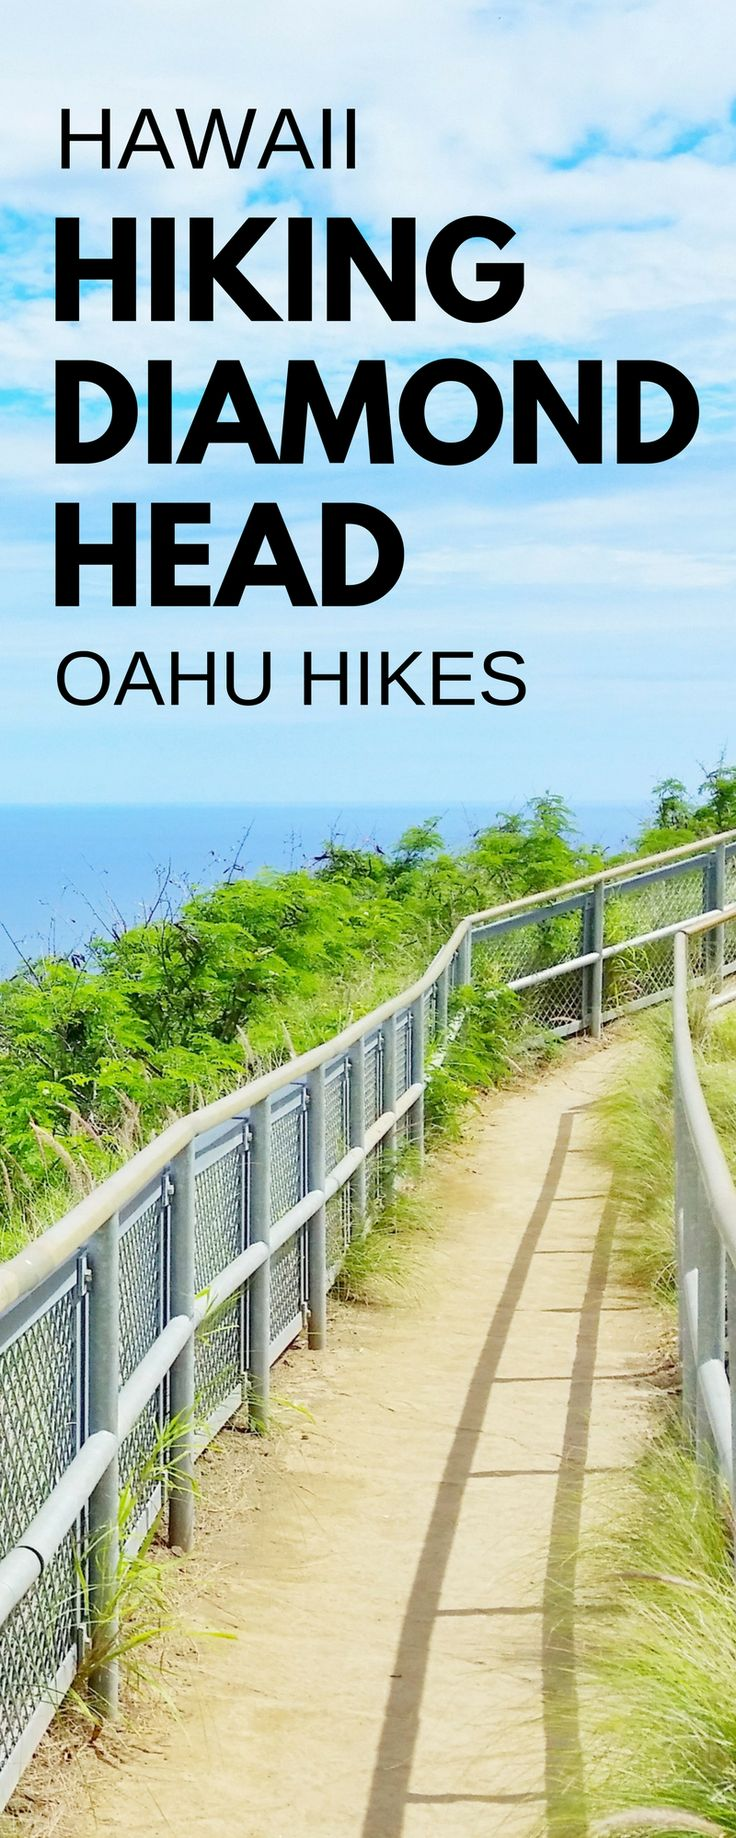 Best Oahu hikes with best views: Diamond Head Hike! For US hiking trails in Hawaii, tons of hikes on Oahu to choose on Hawaii vacation! Doing best hiking trails on Oahu gives things to do with nearby beaches for swimming, snorkeling, and to see turtles! Planning tips for this crater hike trail summit near Waikiki and Honolulu with what to wear hiking in Hawaii and what to pack and add to Hawaii packing list. Outdoor travel destinations for bucket list and budget adventures... #hawaii #oahu